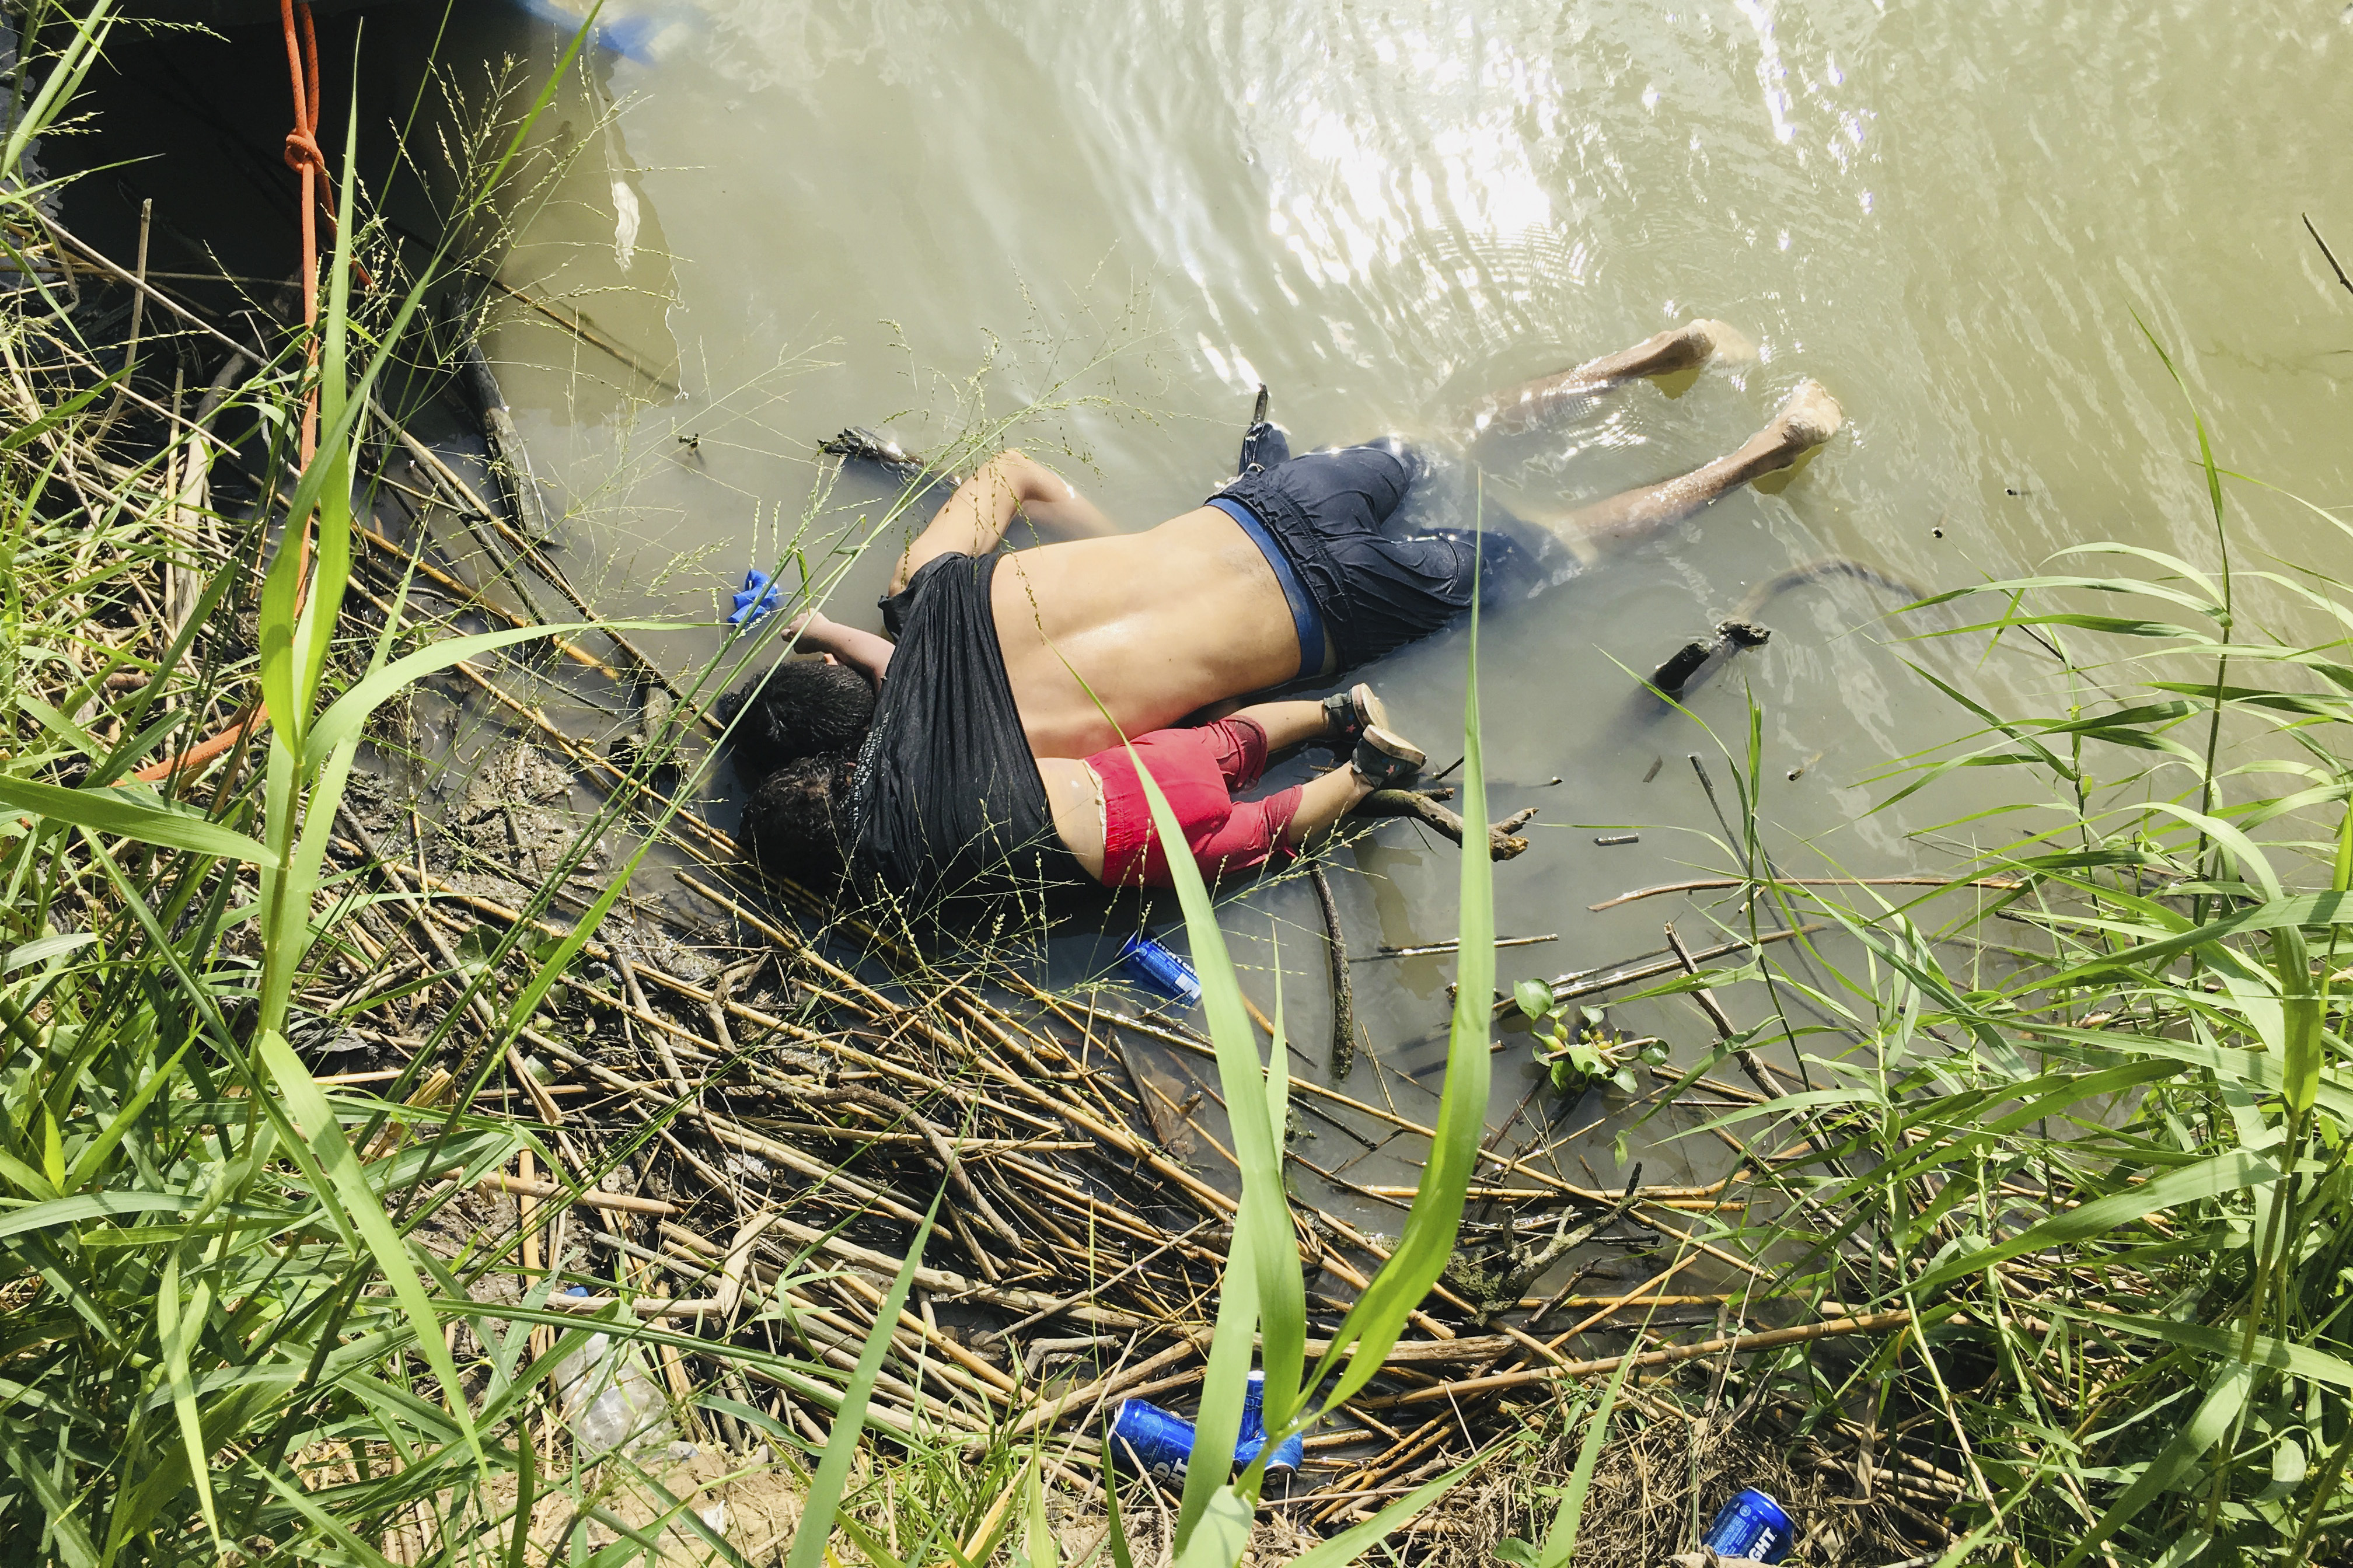 Video captures drowned man and daughter near US border - CNN Video